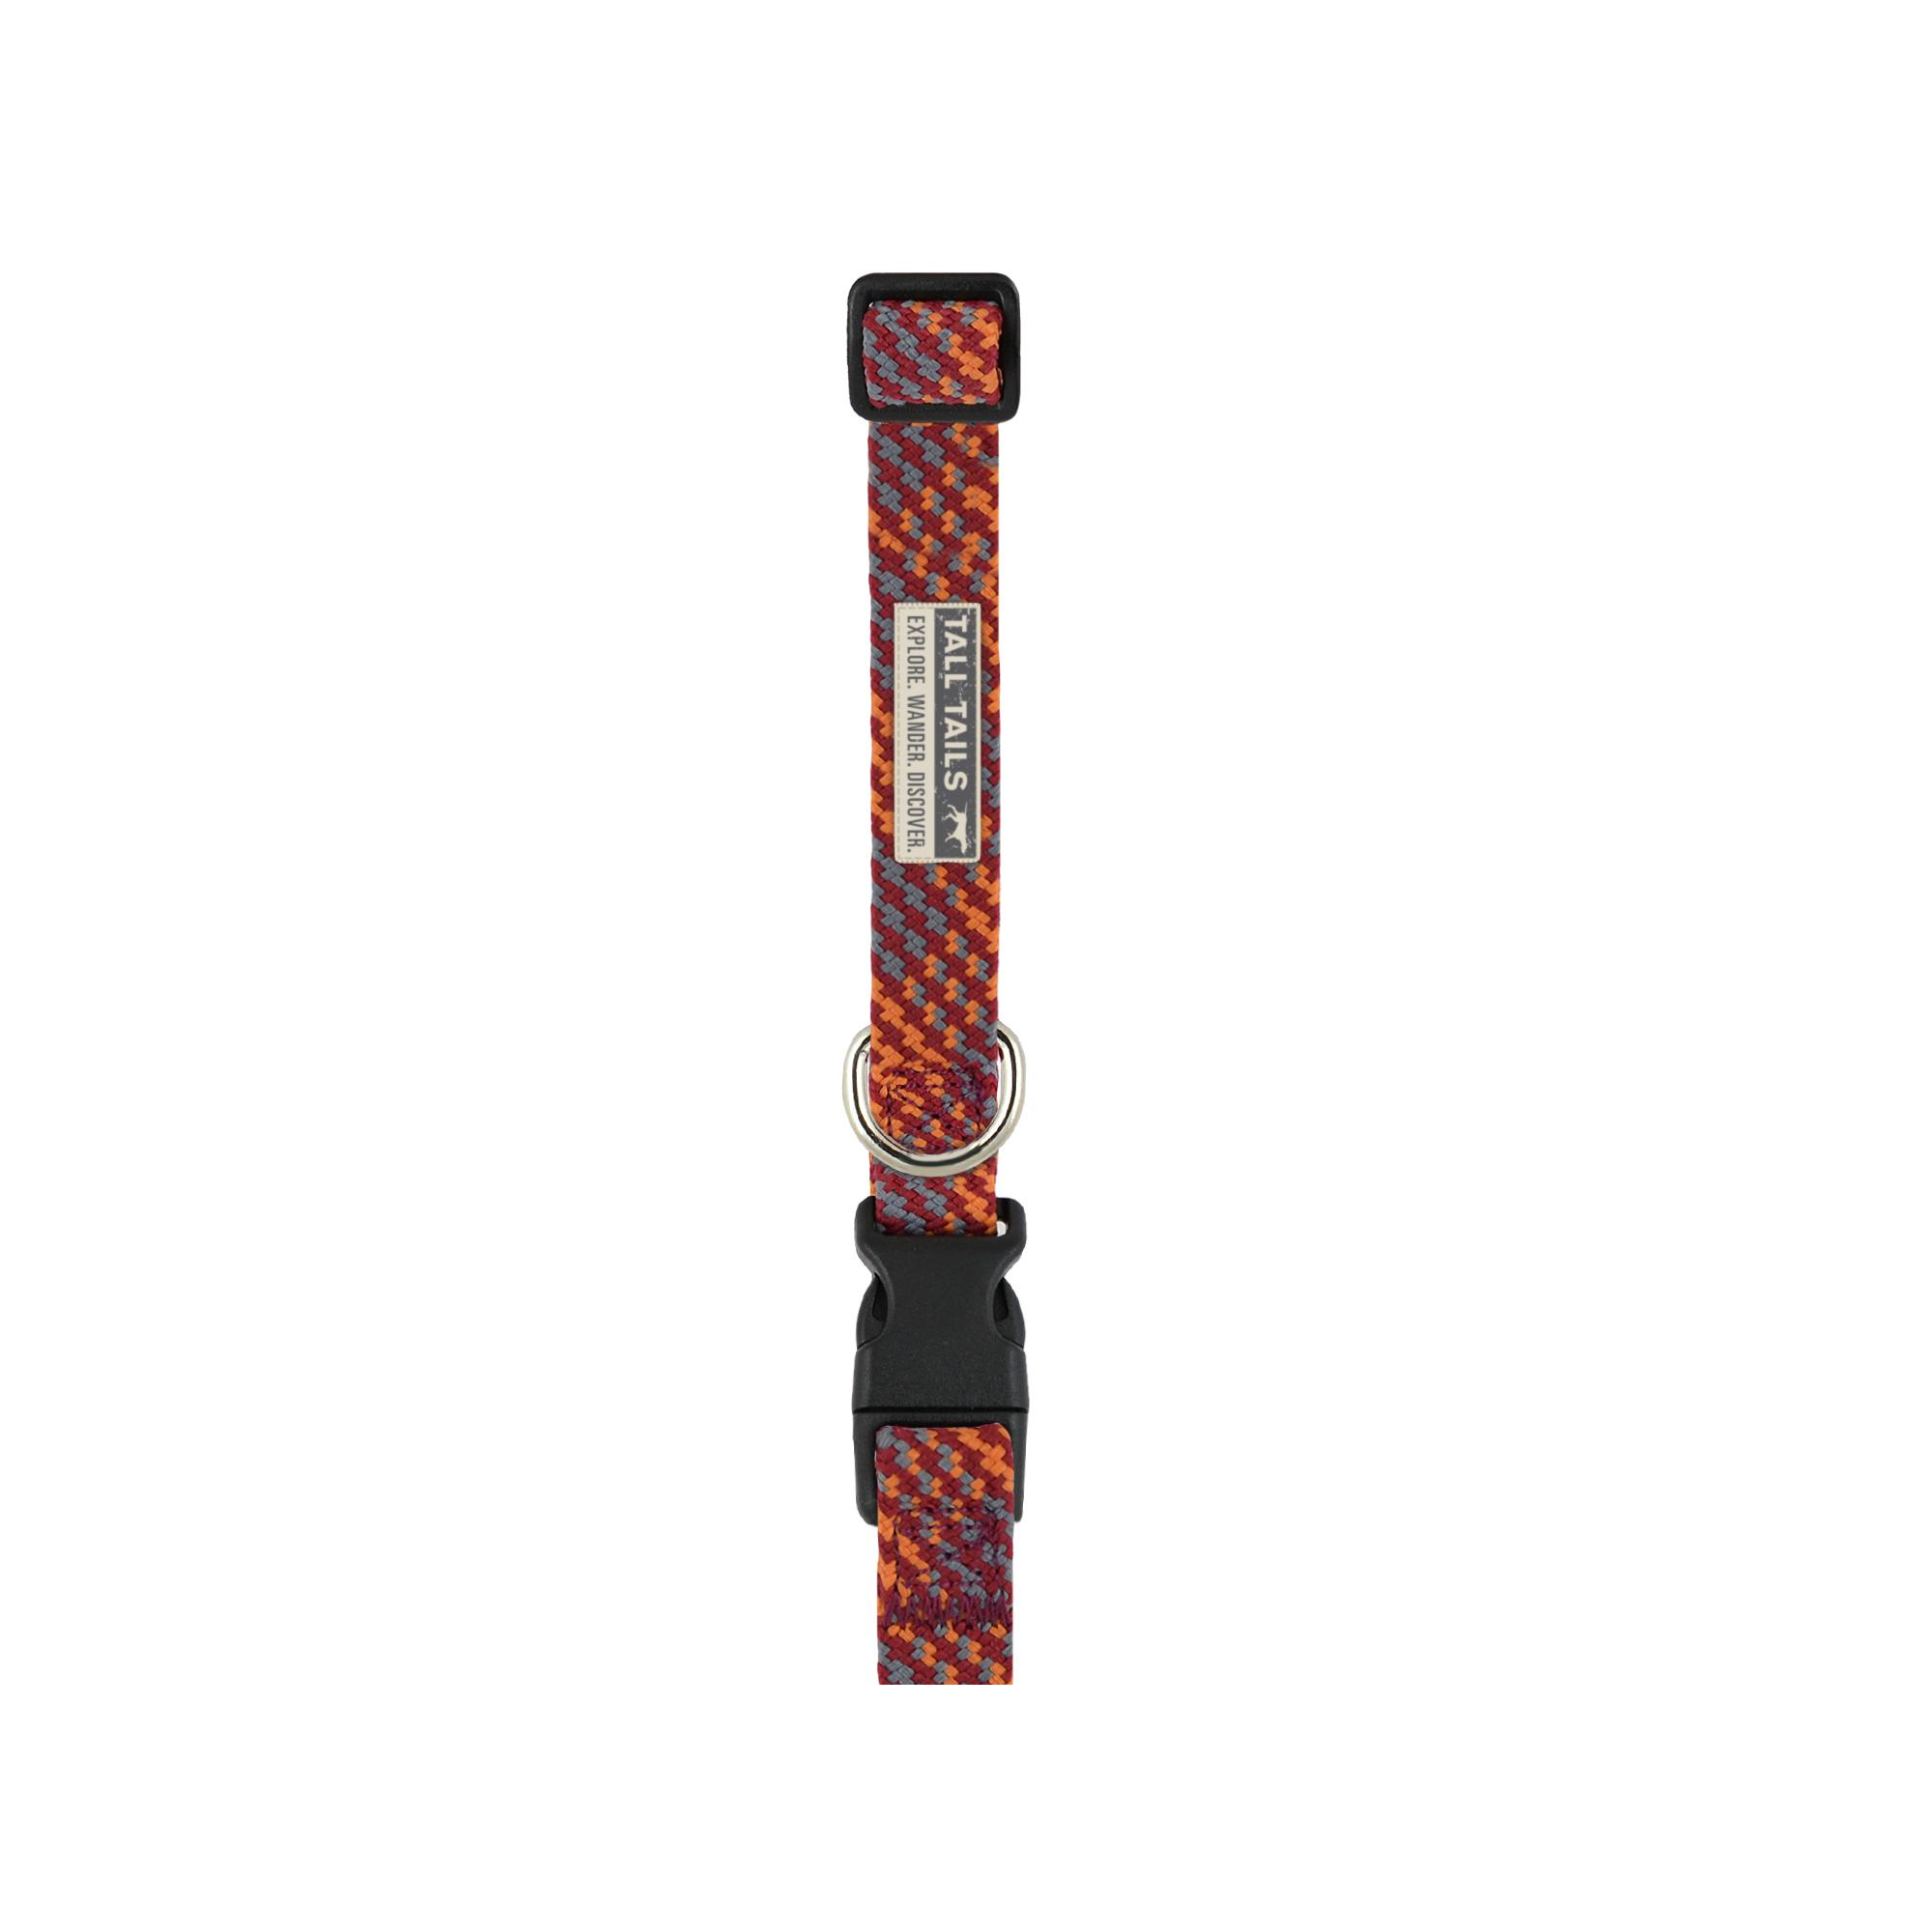 Tall Tails Braided Dog Collar, Small